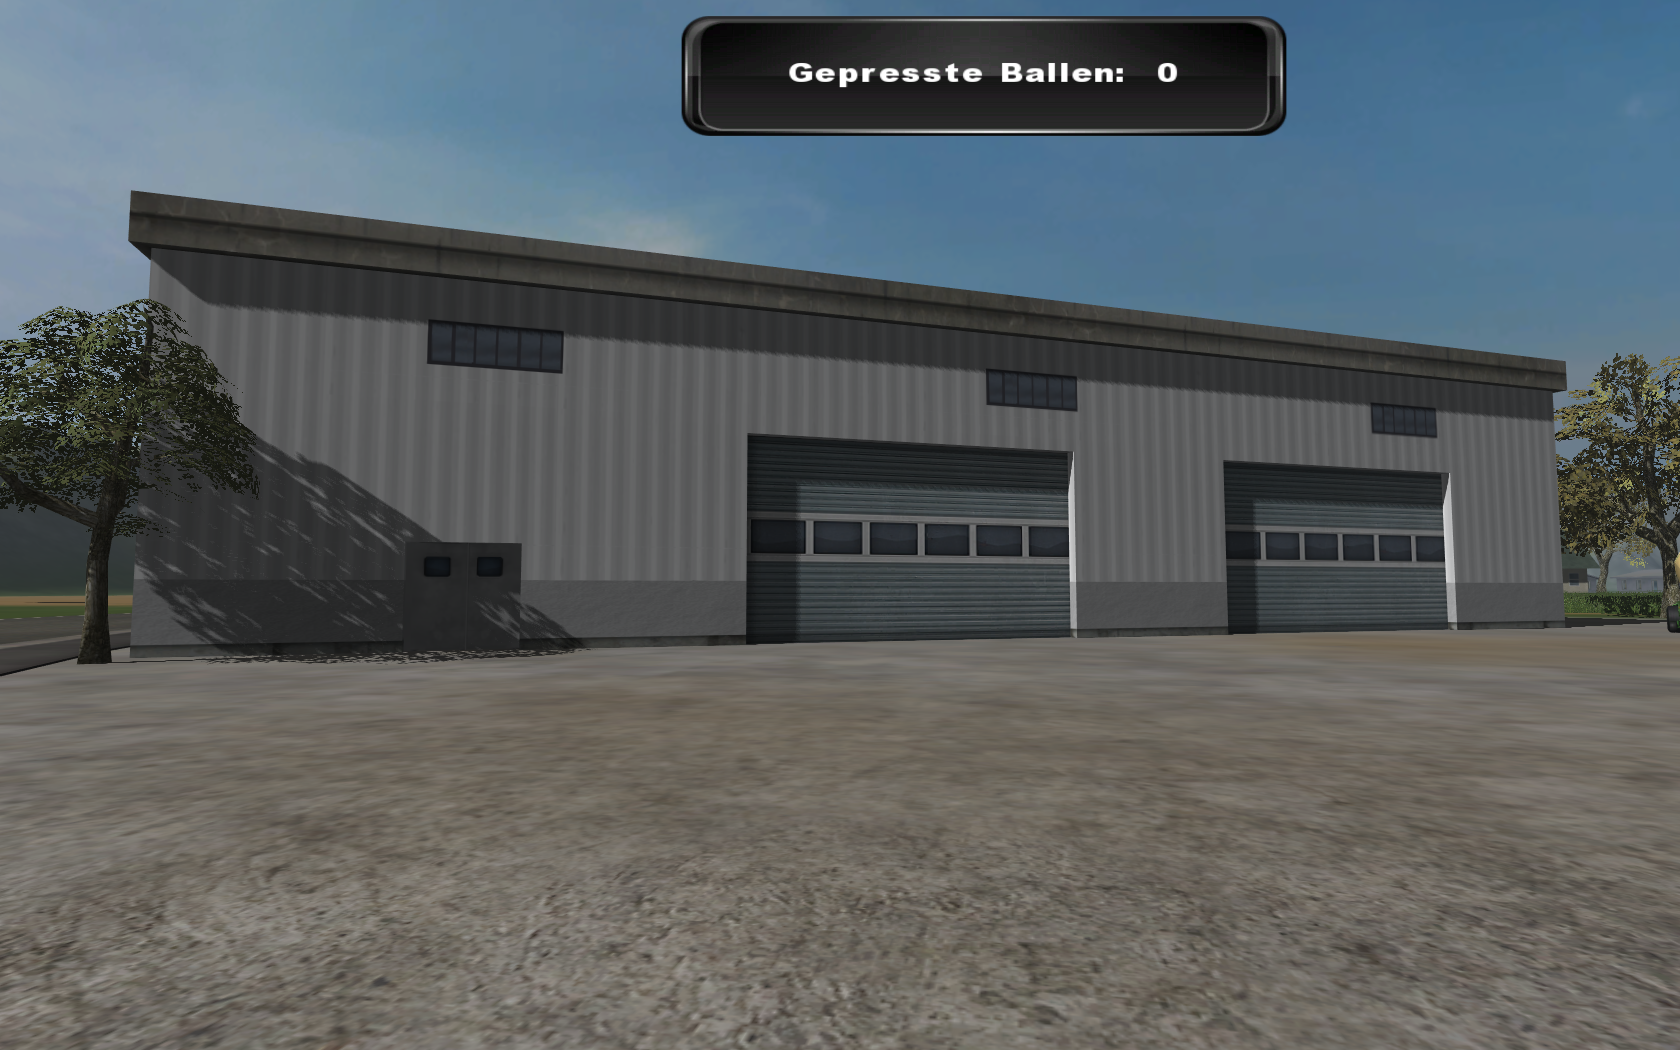 Cleaner Skin for the Warehouses